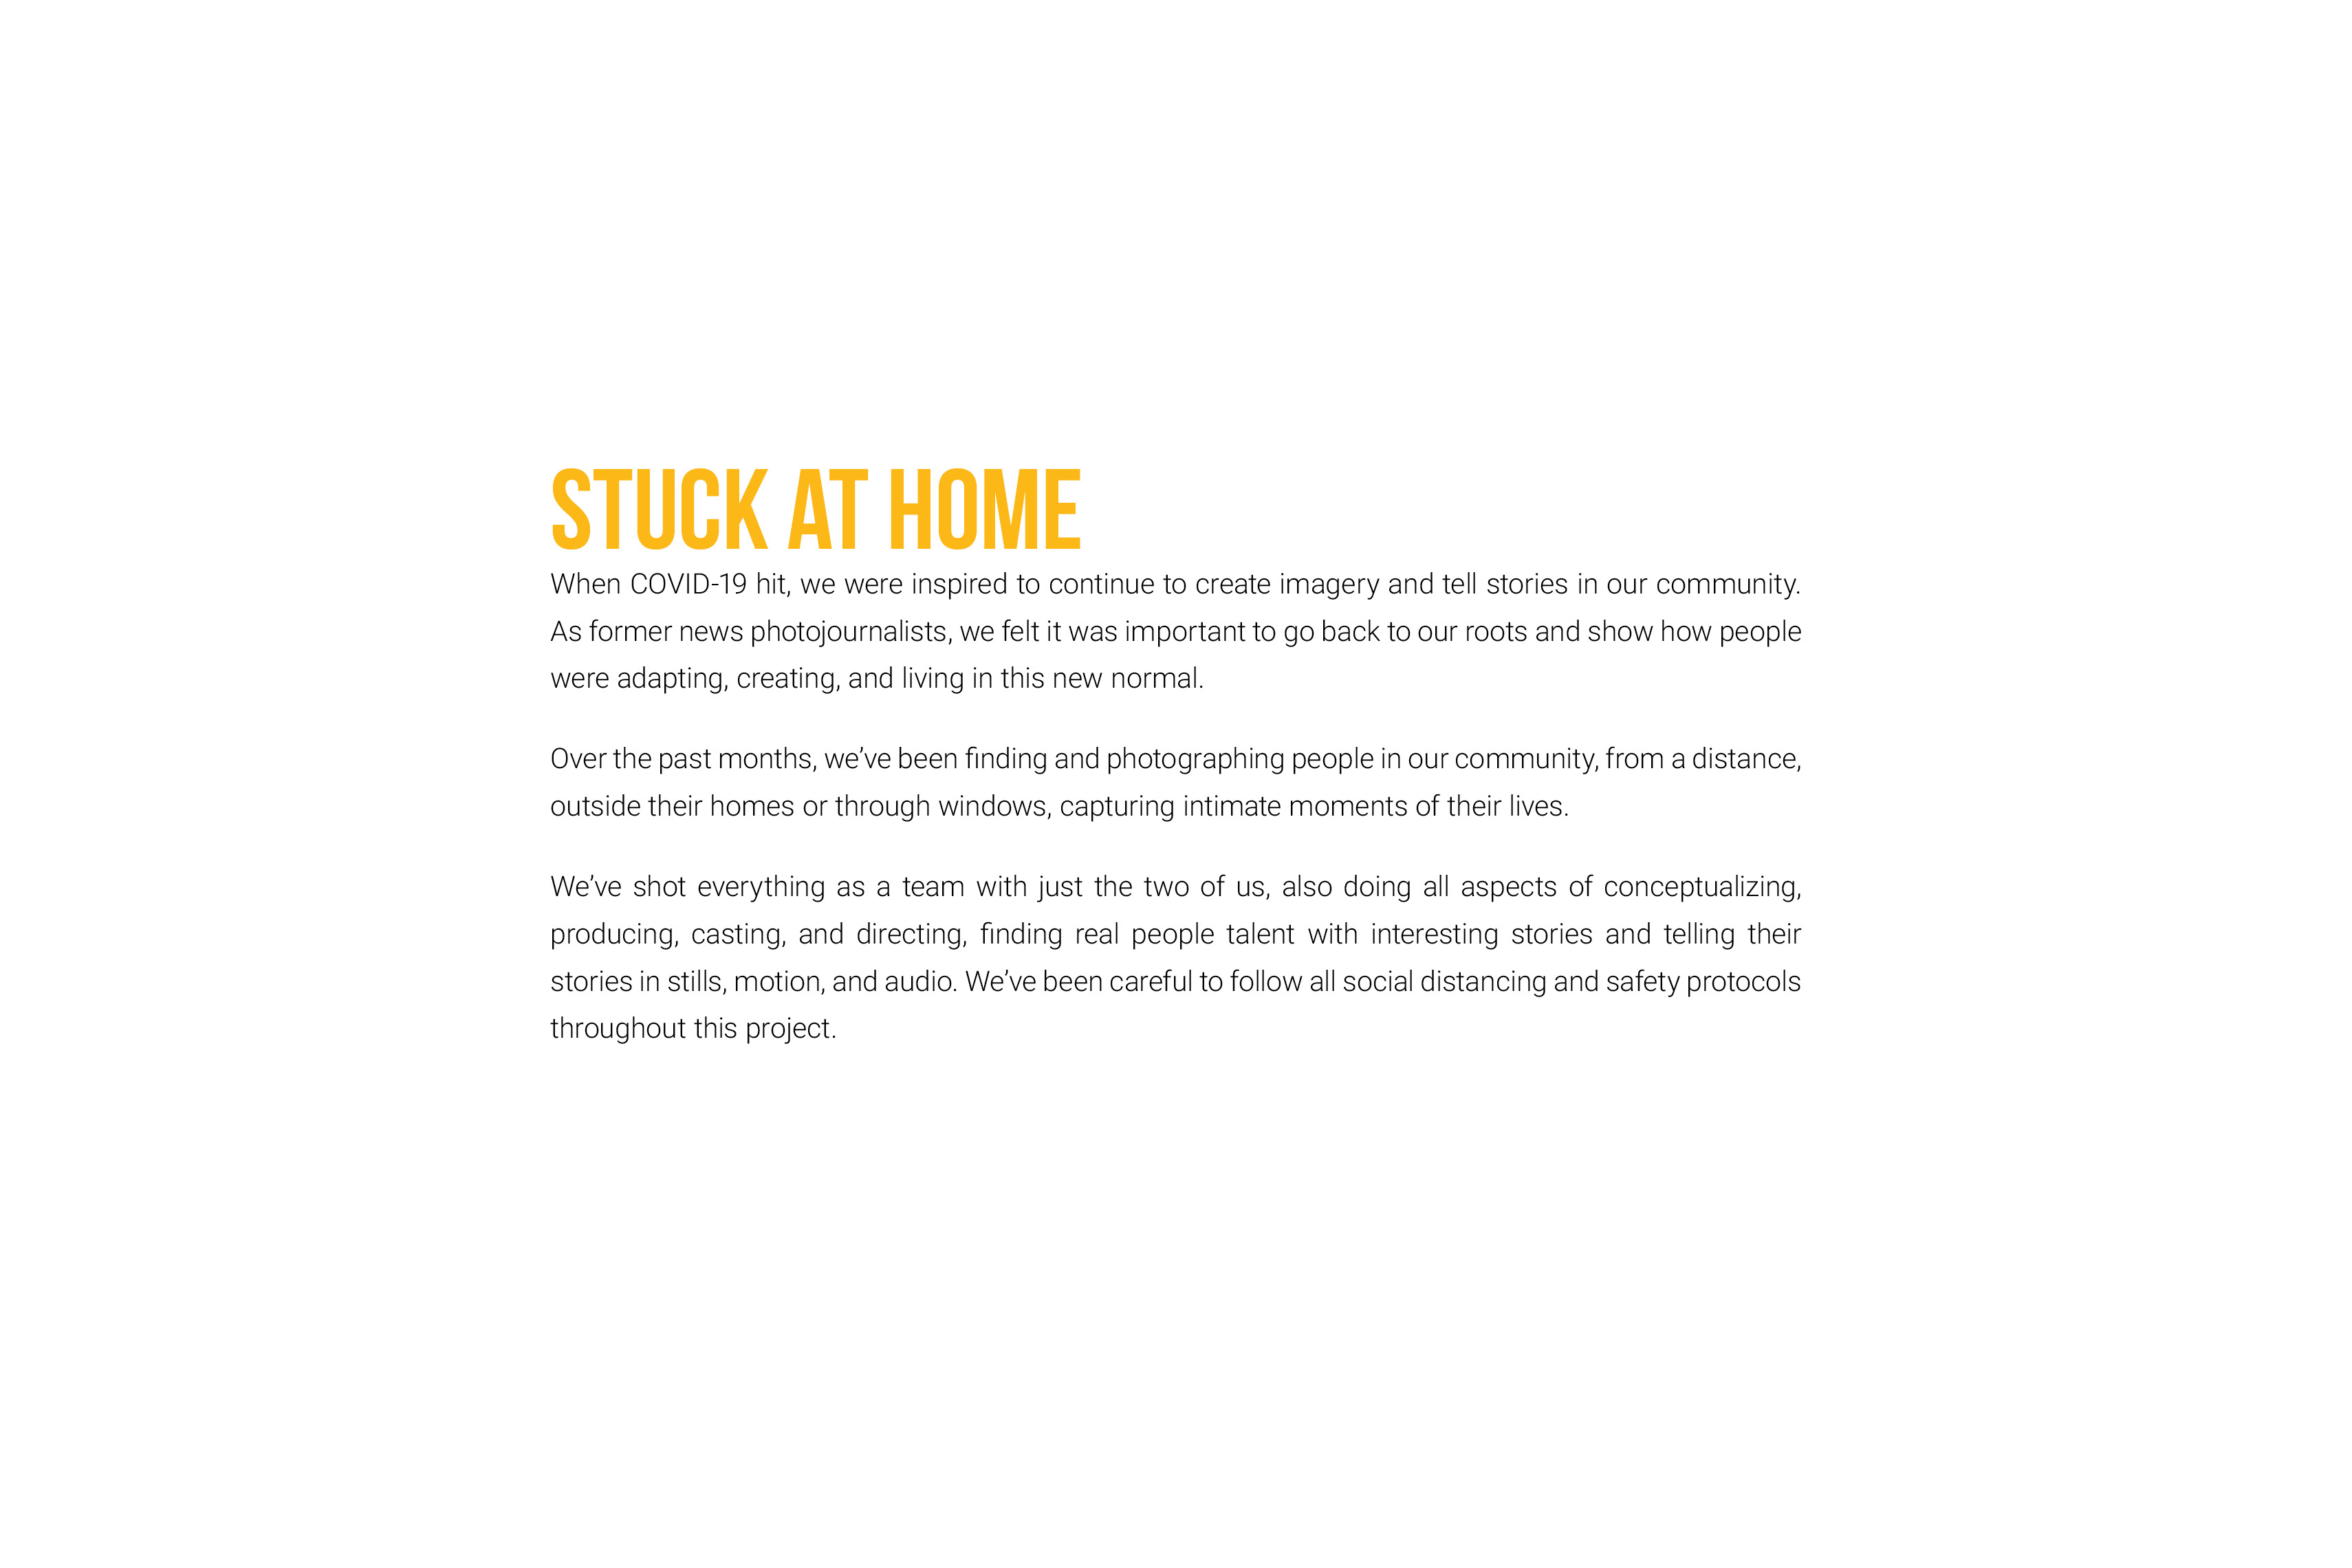 stuck-at-home-intro-text